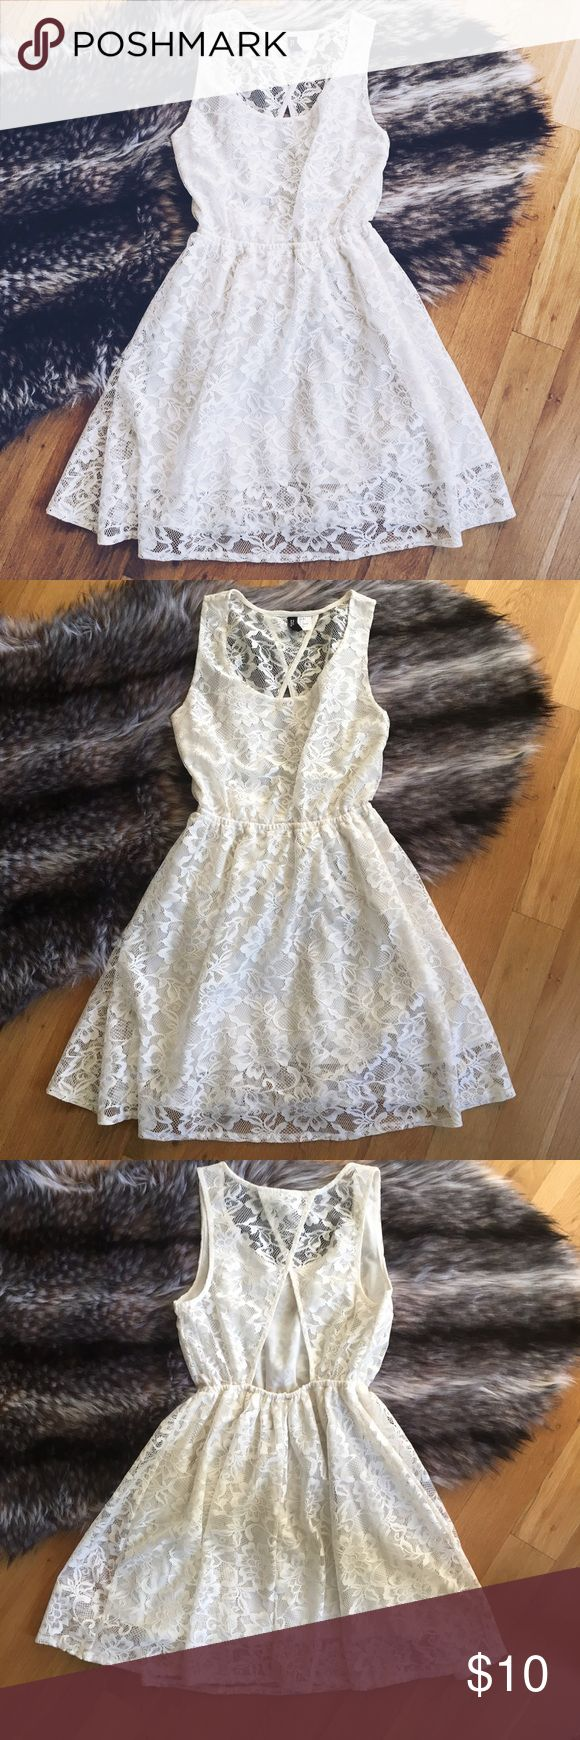 H&M White Lace Mini Dress Gently worn off white lace dress by H&M. In great condition with great lace details. Size 6 Dresses Mini